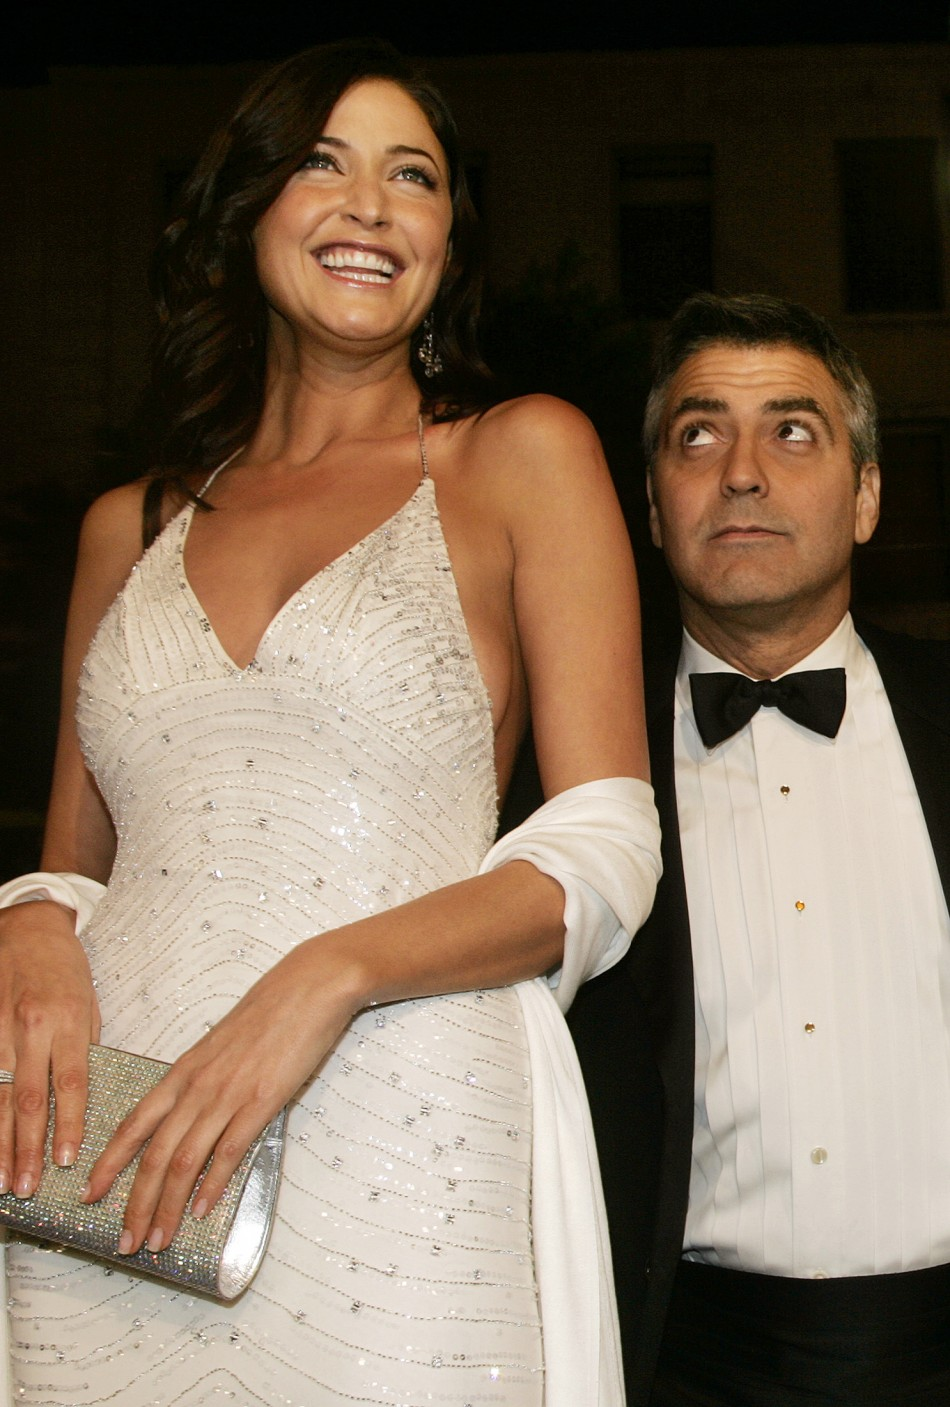 George Clooney About to Hug